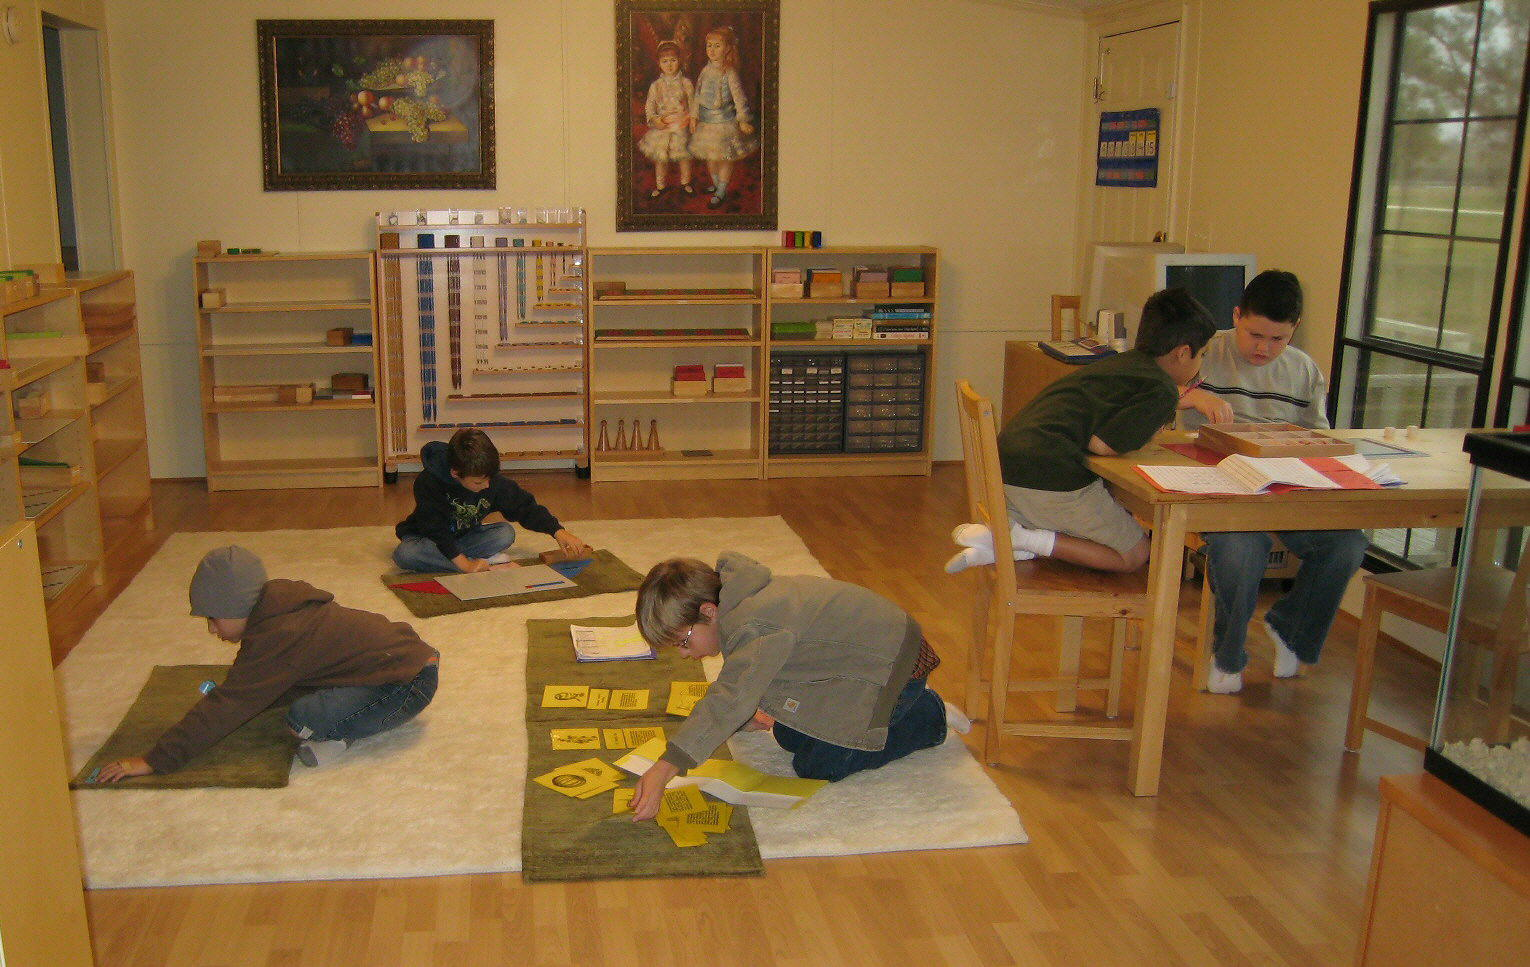 montessori course assignments This 60-hour course is an introduction to dr montessori's educational theory and practice with children - for classroom assistants, teachers, administrators, parent educators, parents, parents-to-be, nannies, and.